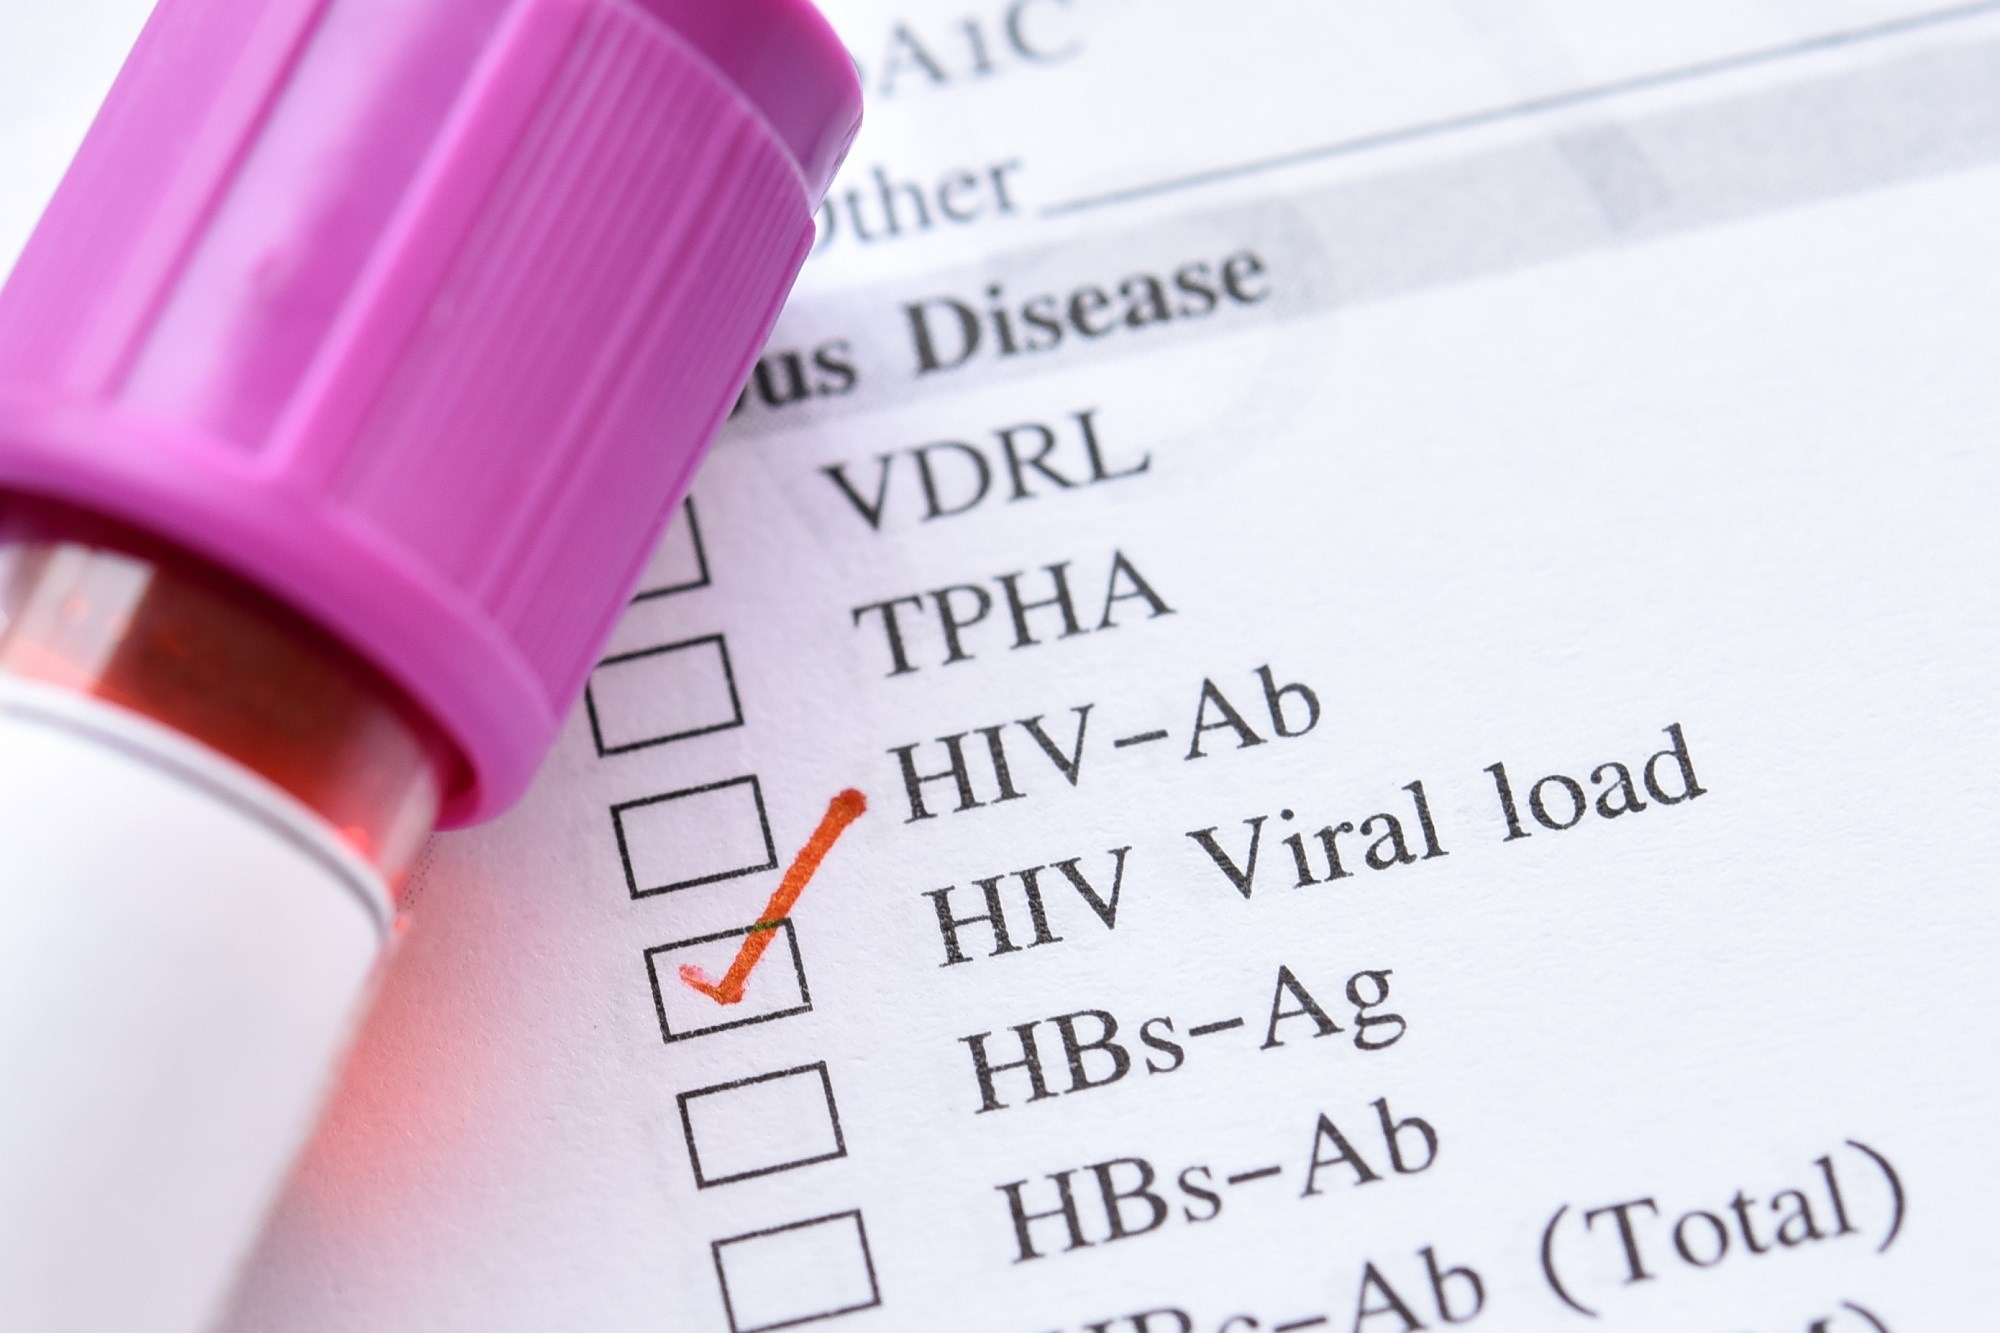 Early Diagnosis of HIV Linked With Higher Viral Loads Than Later Diagnosis